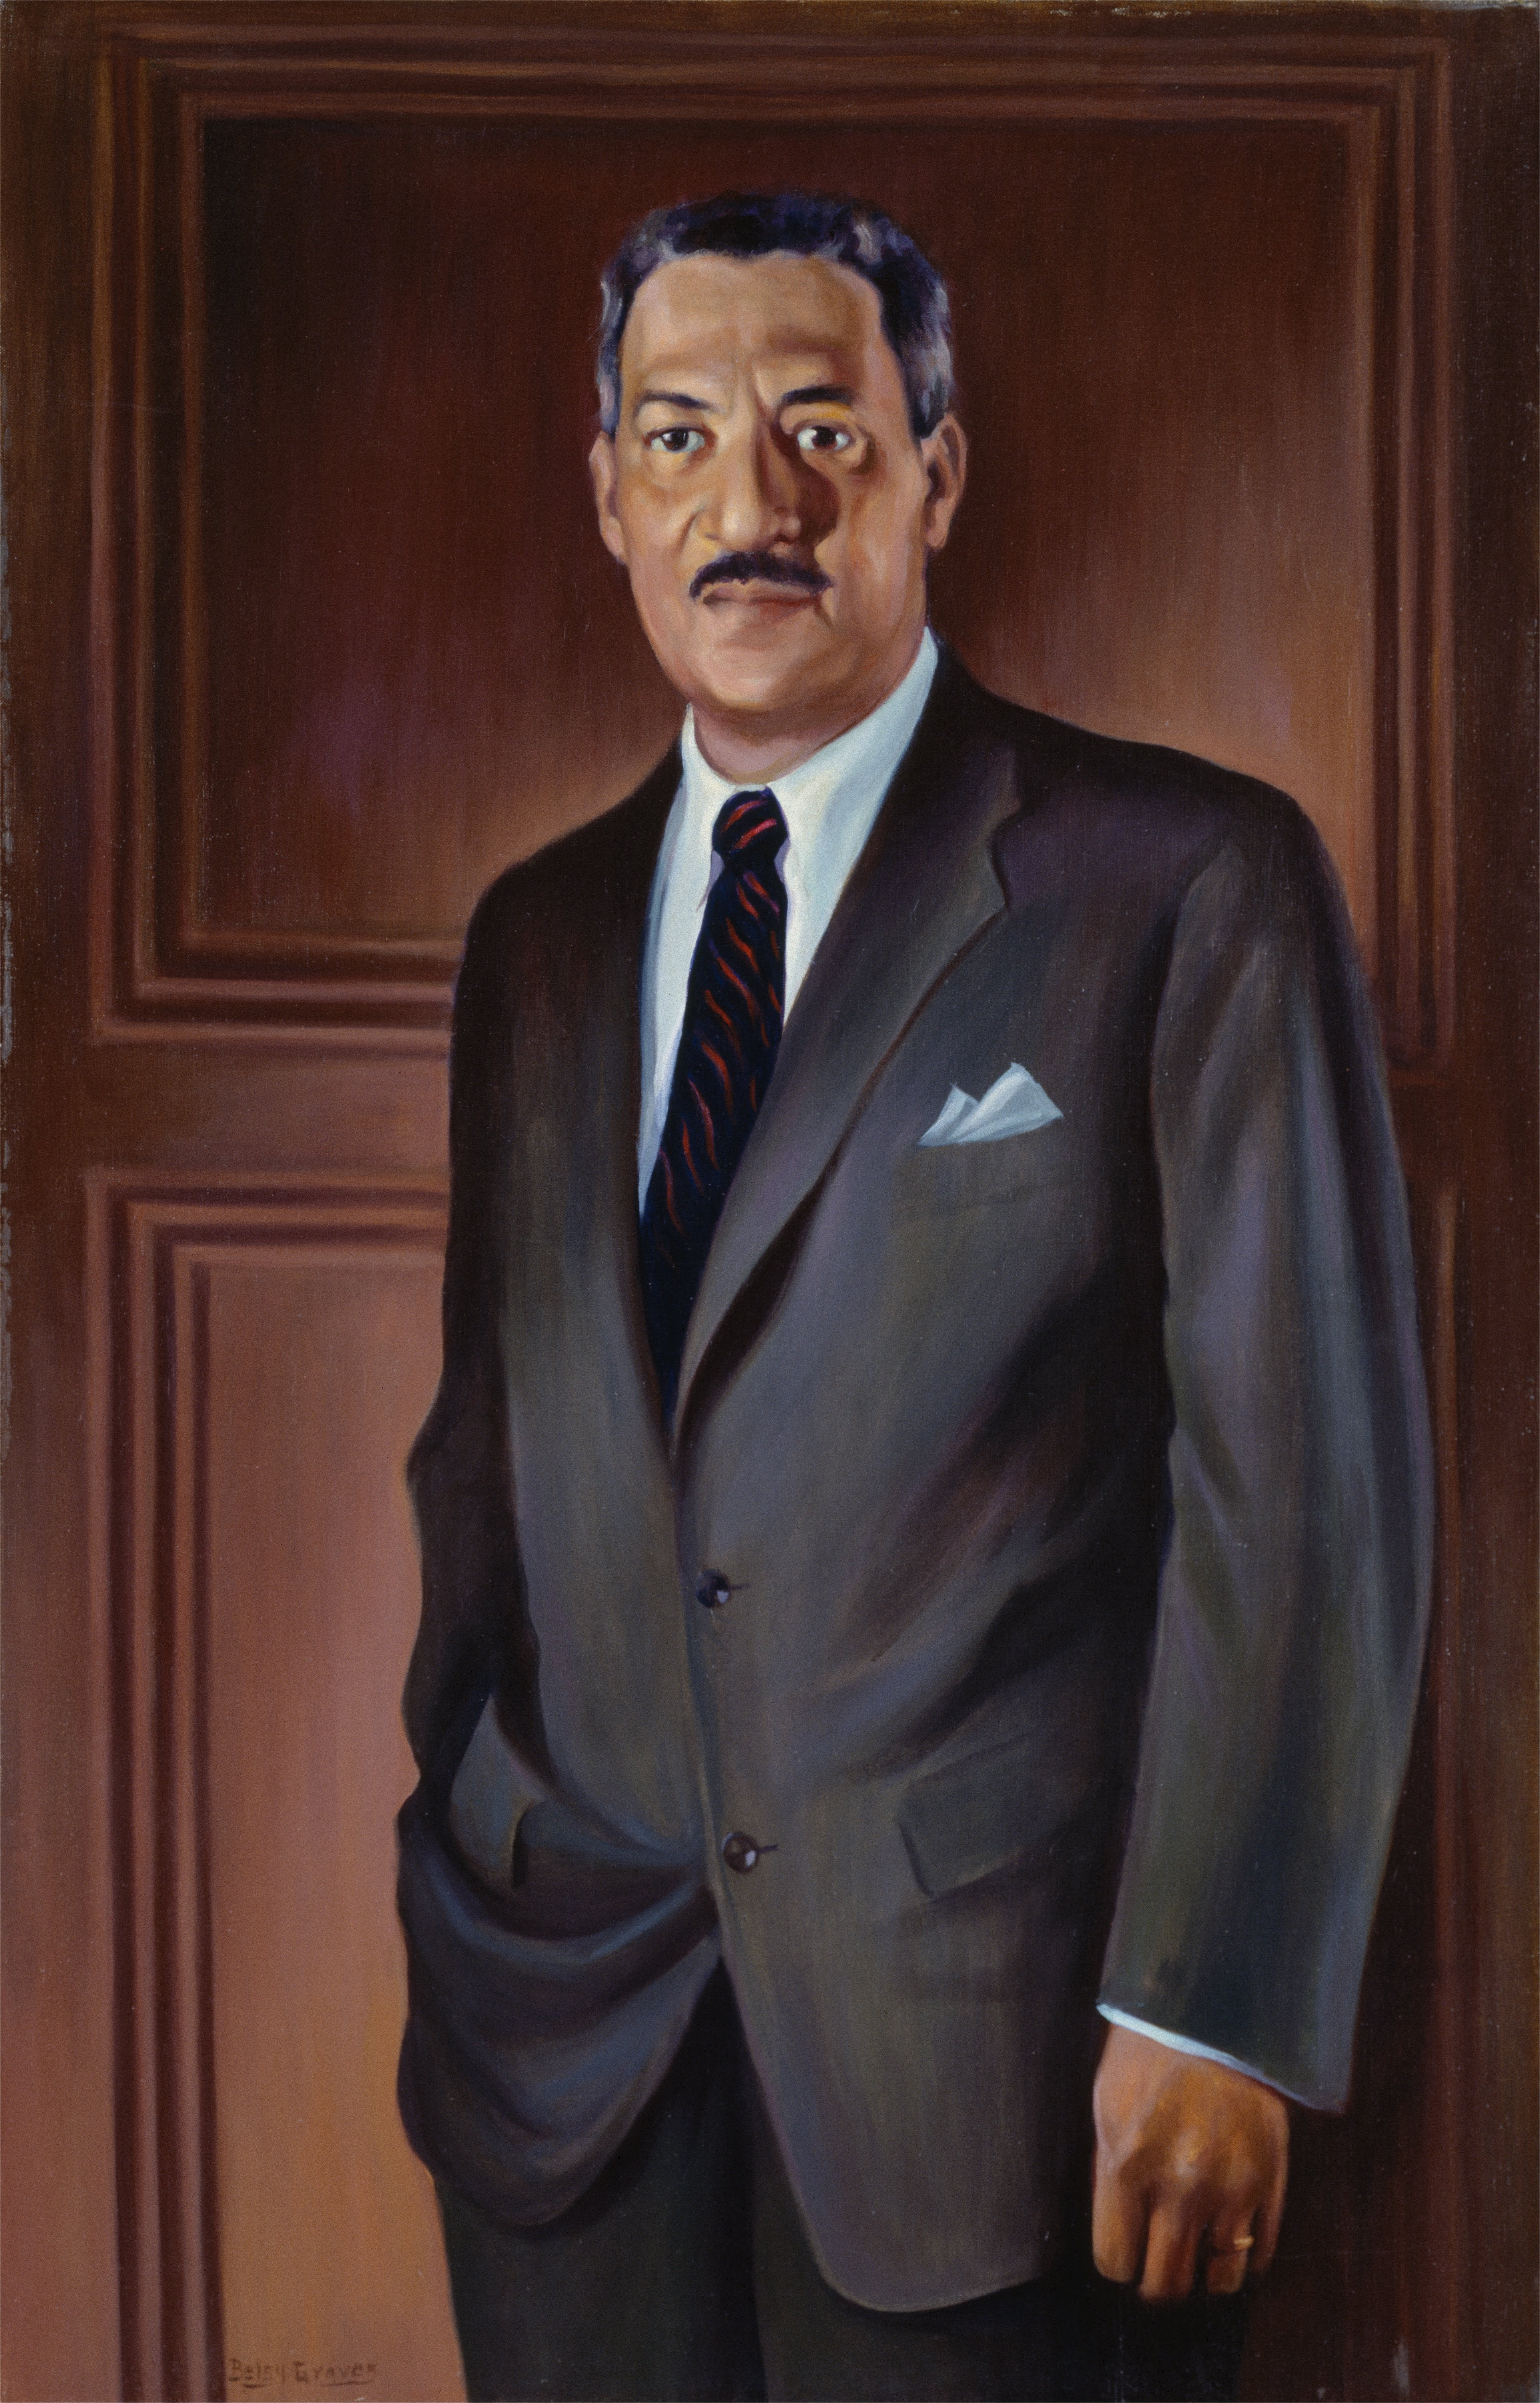 Oil on canvas of Thurgood Marshall standing before a wood panelled wall.